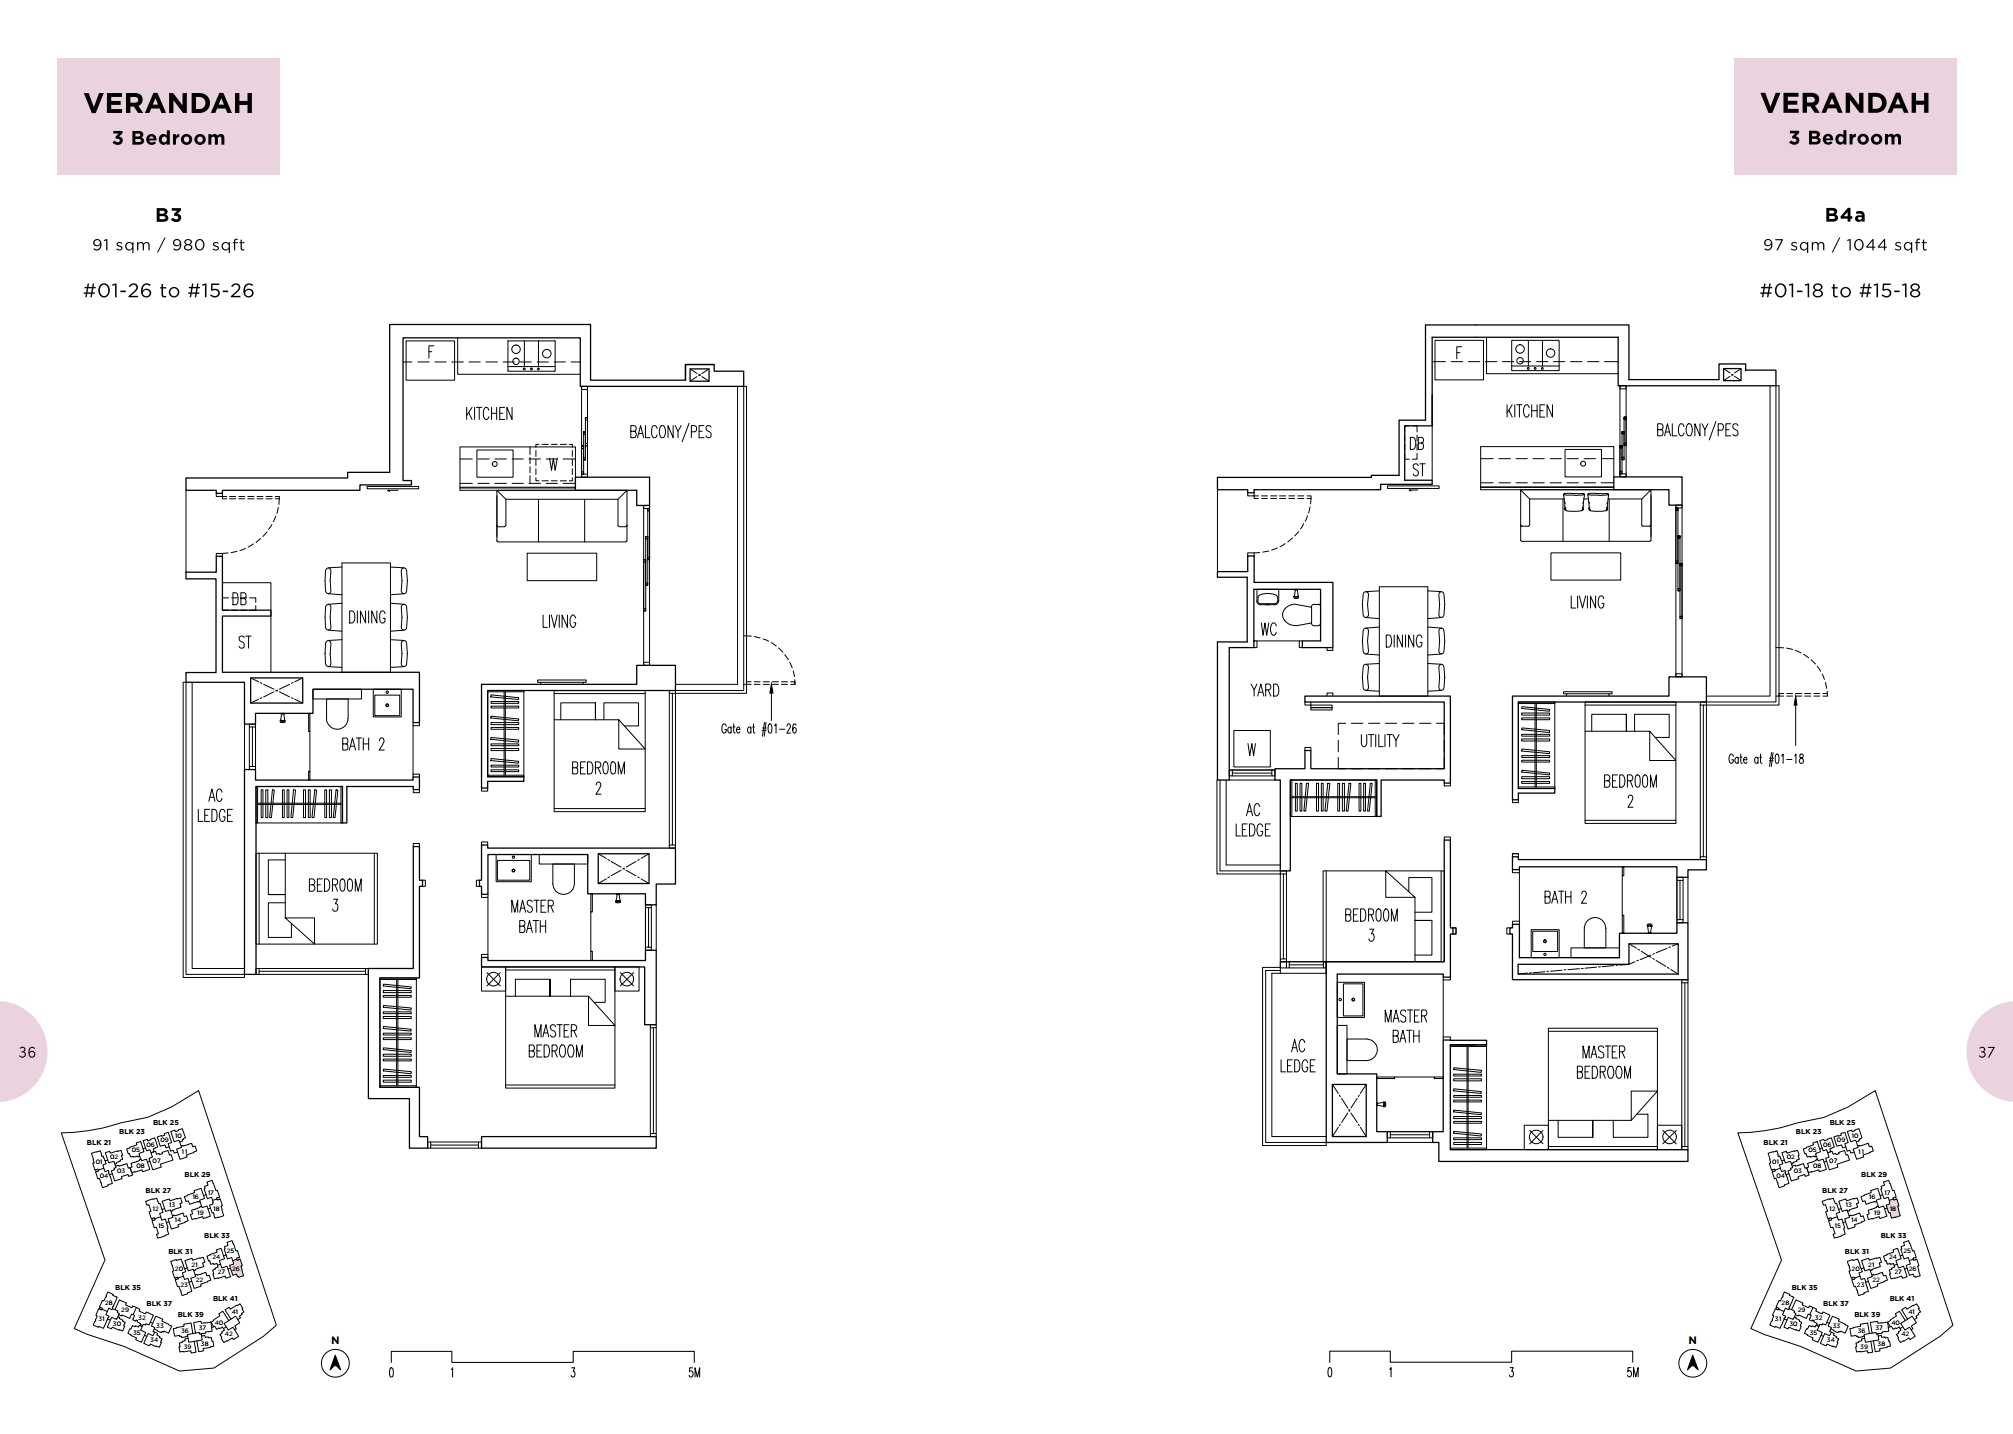 Parc Life FloorPlan B3 and B4a